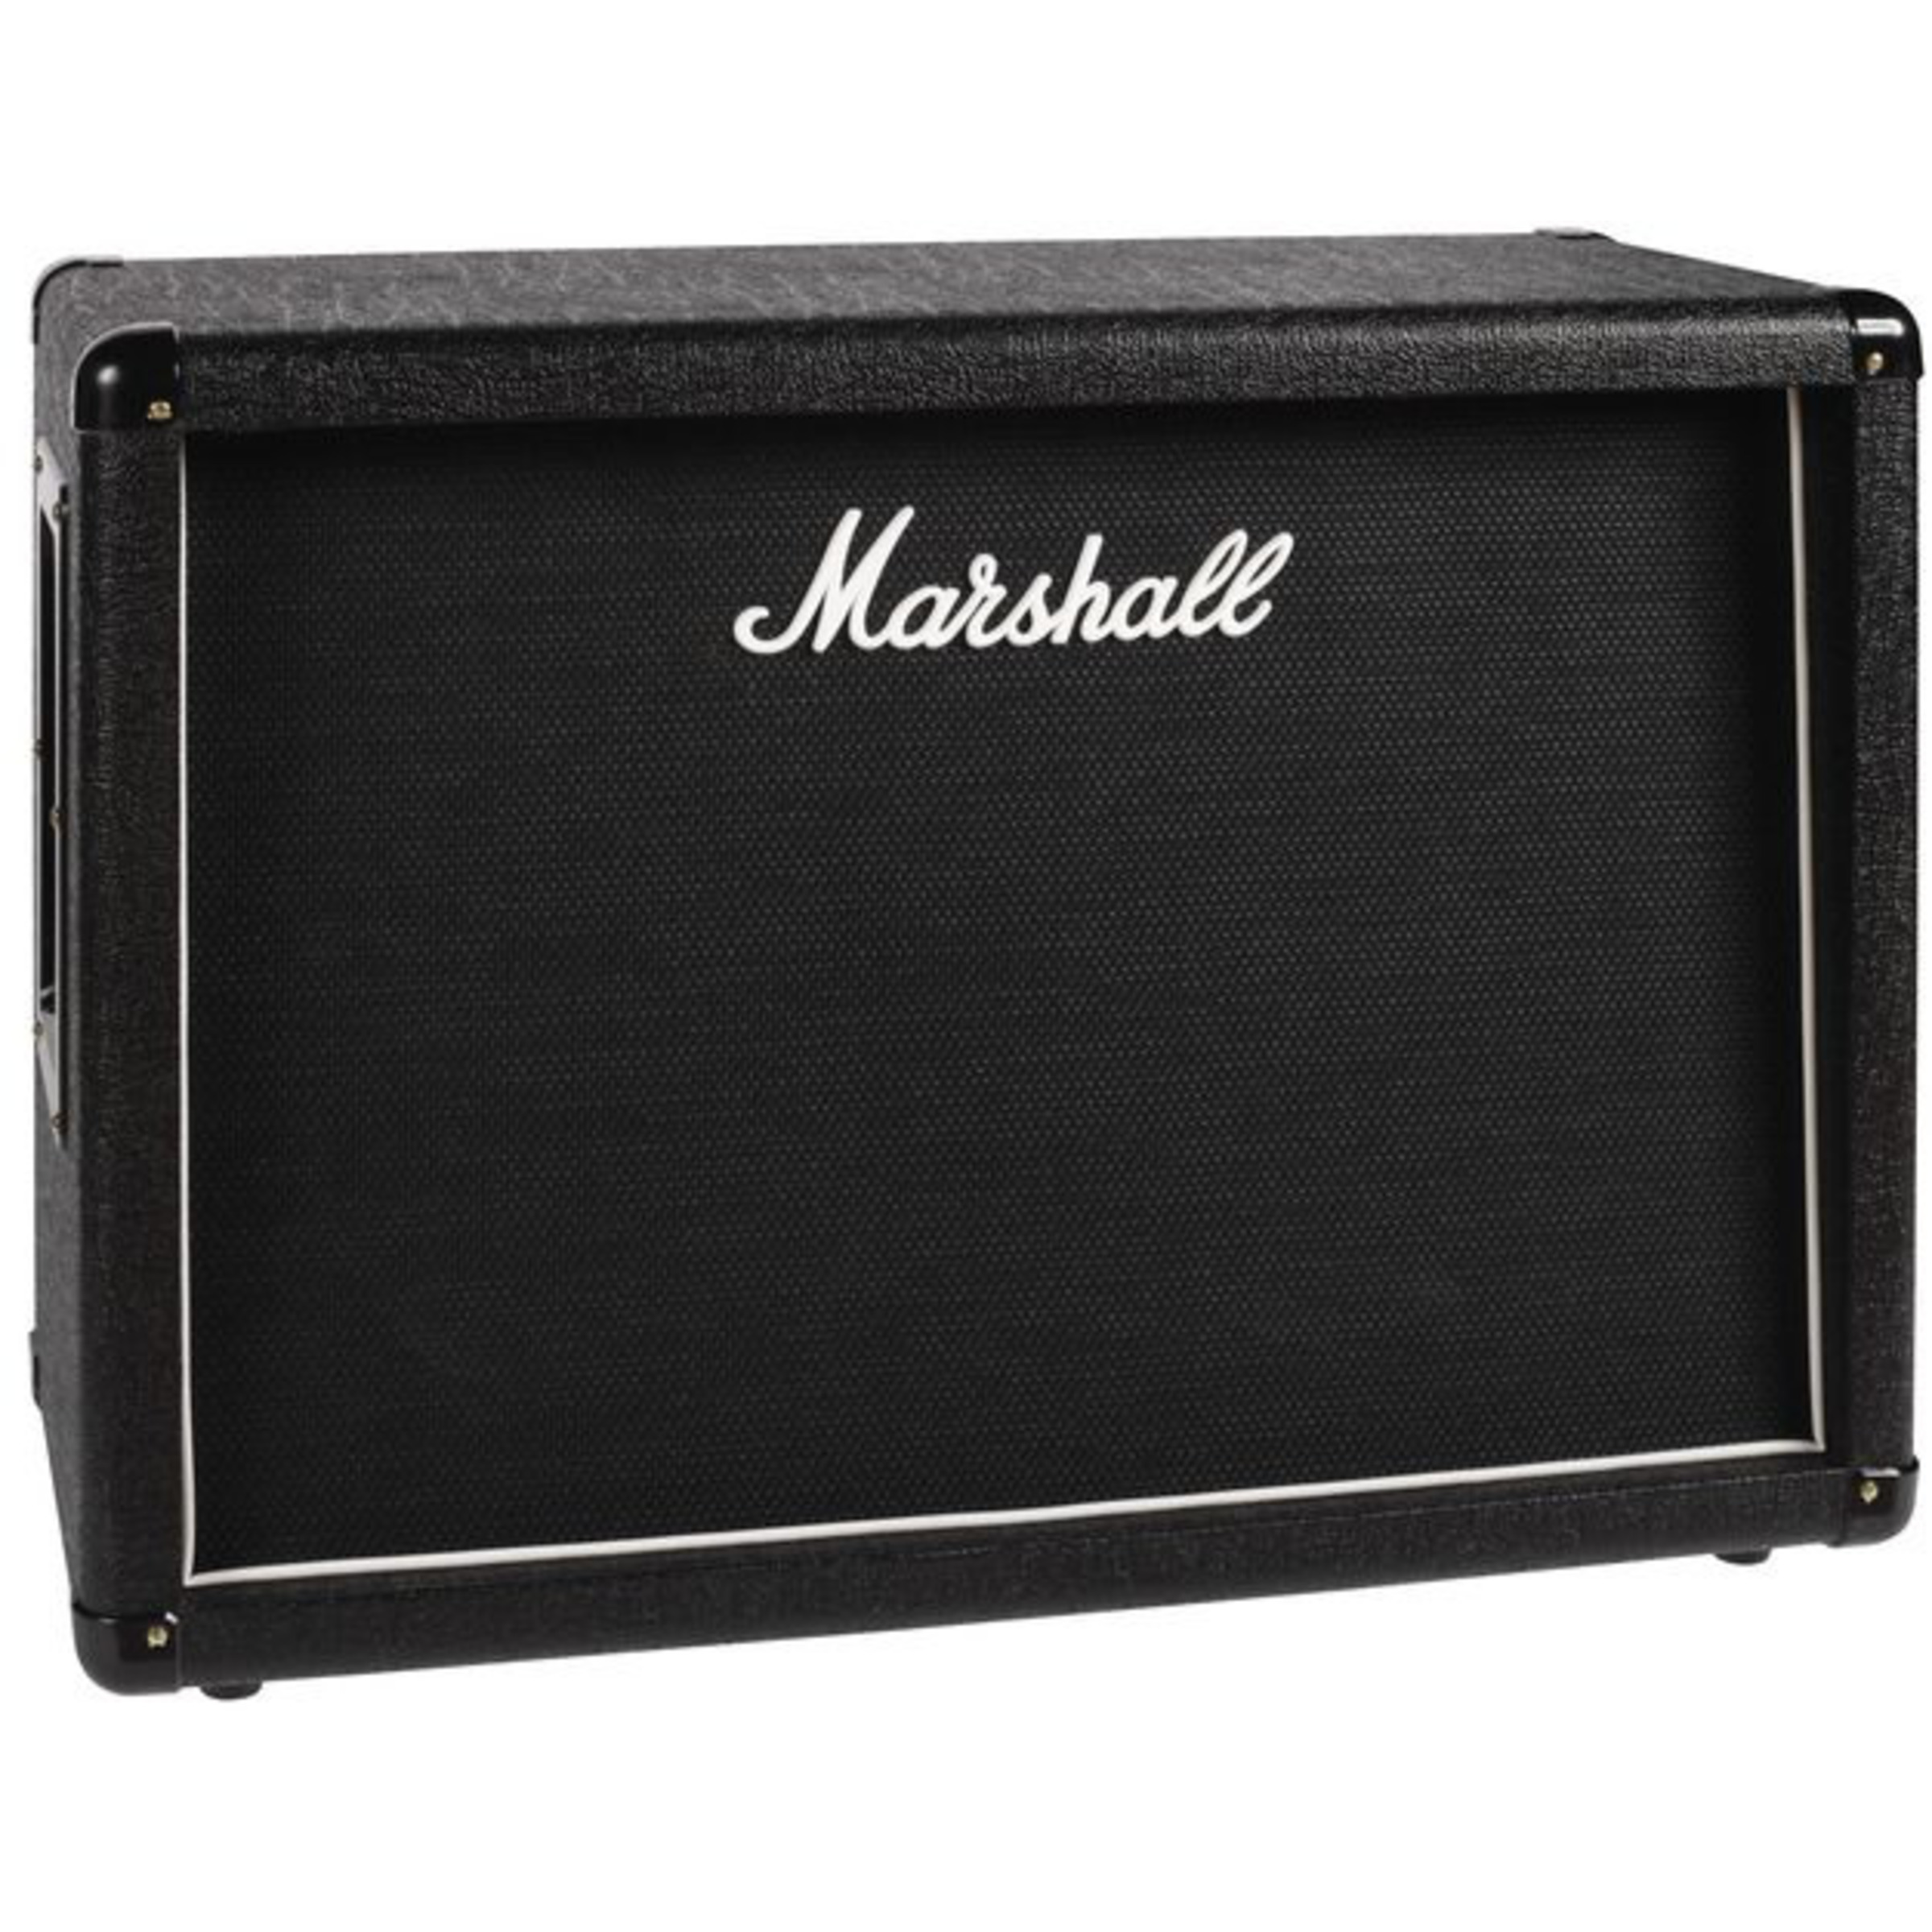 marshall mx212 2x12 guitar speaker cabinet giggear. Black Bedroom Furniture Sets. Home Design Ideas